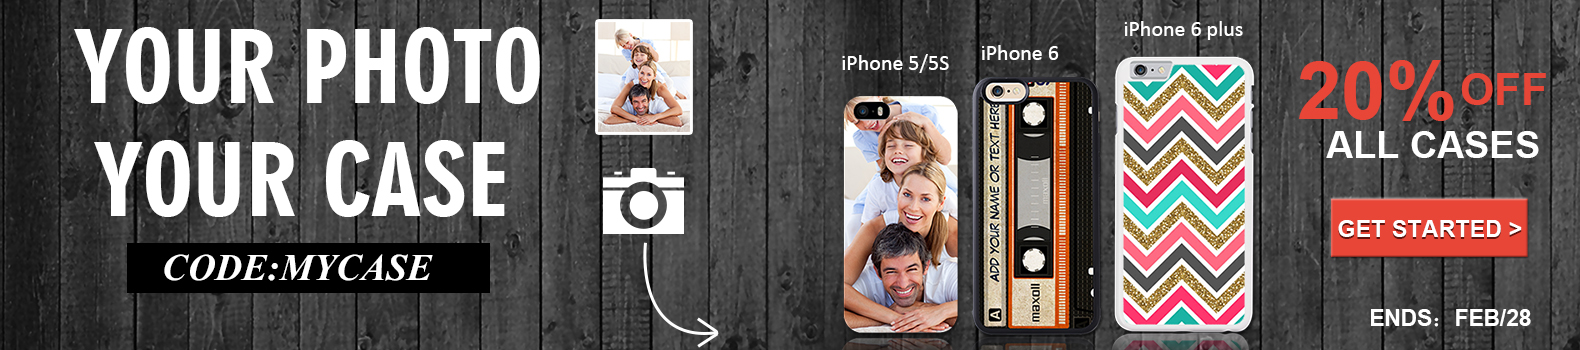 Snapmade 2015 - 20% Off All Phone Cases Deals - 1580*350